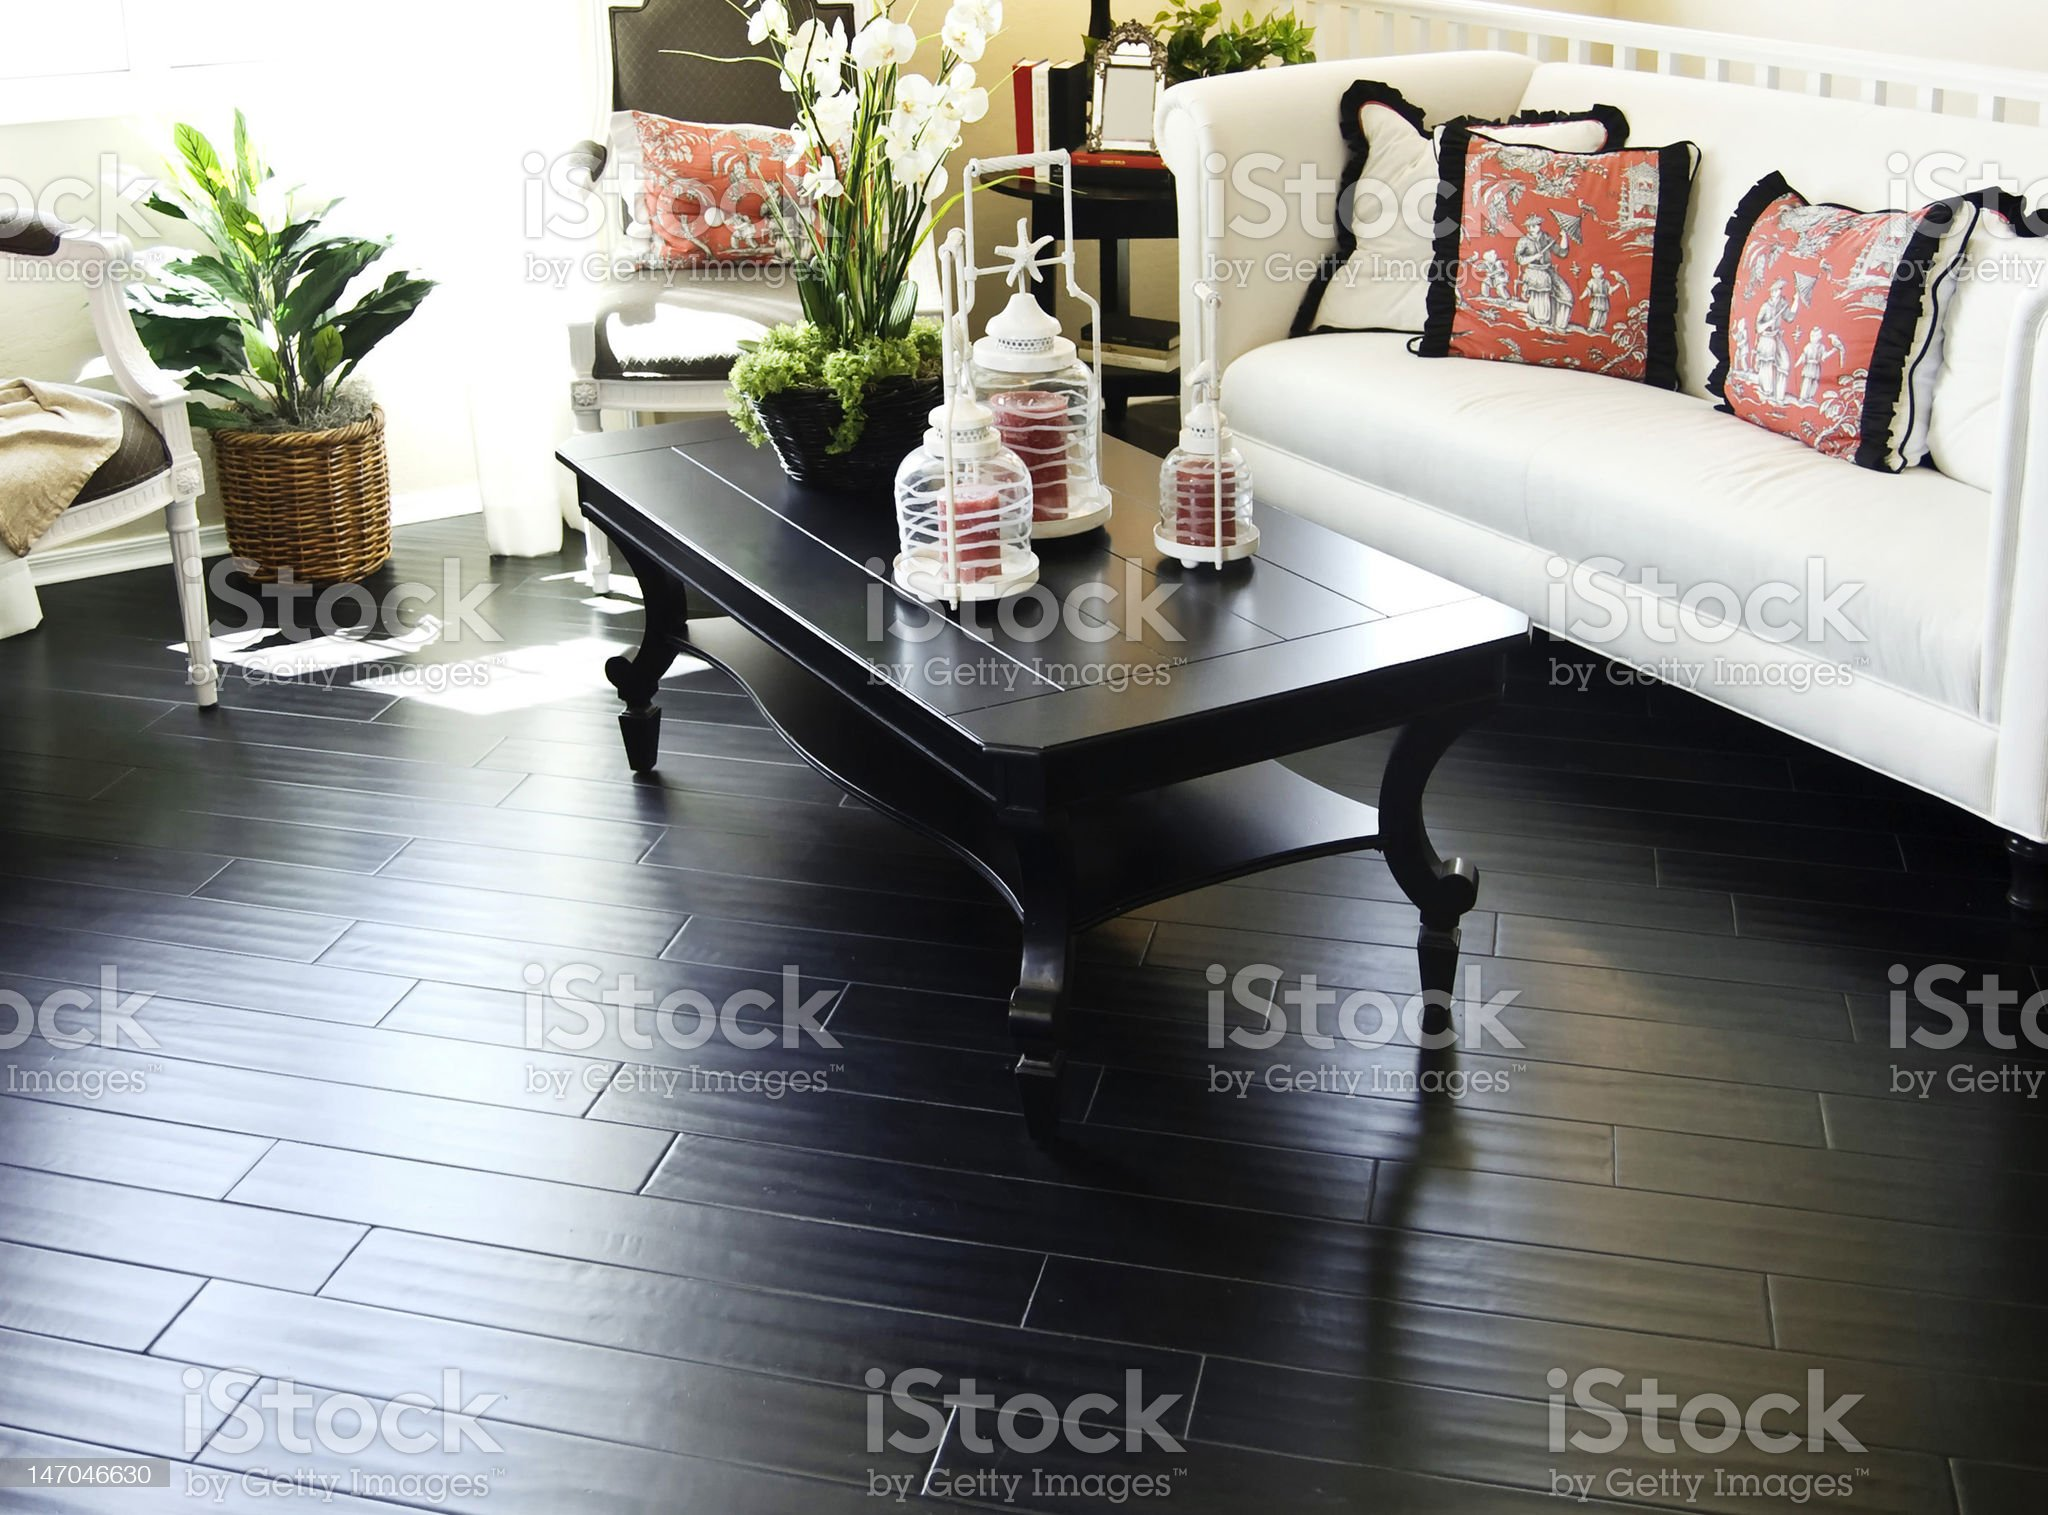 Hardwood flooring in new home royalty-free stock photo